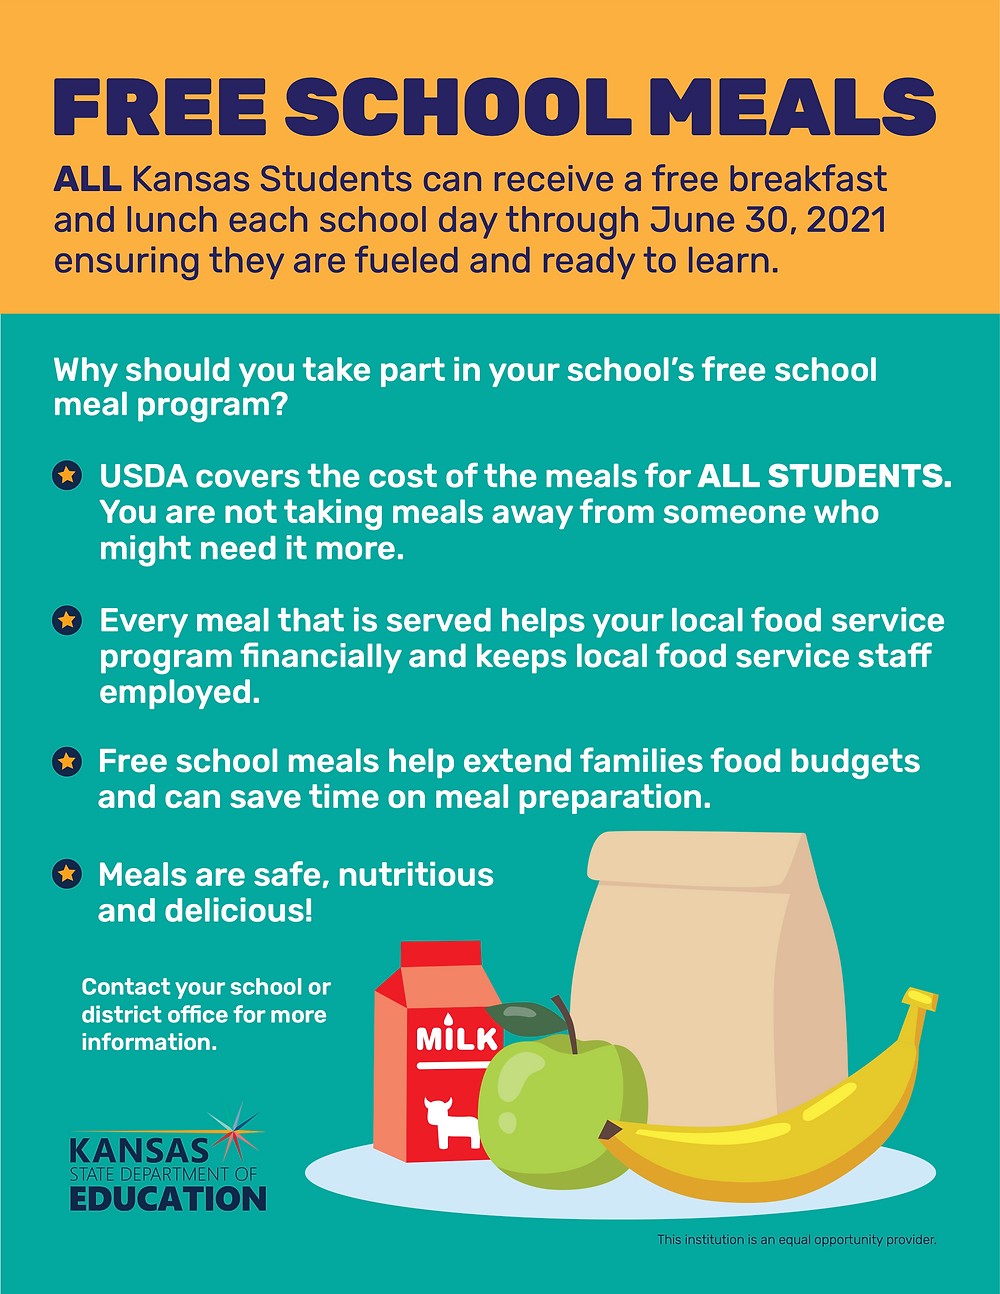 Otis-Bison students receive free breakfast and lunch every school day for the 20-21 school year.